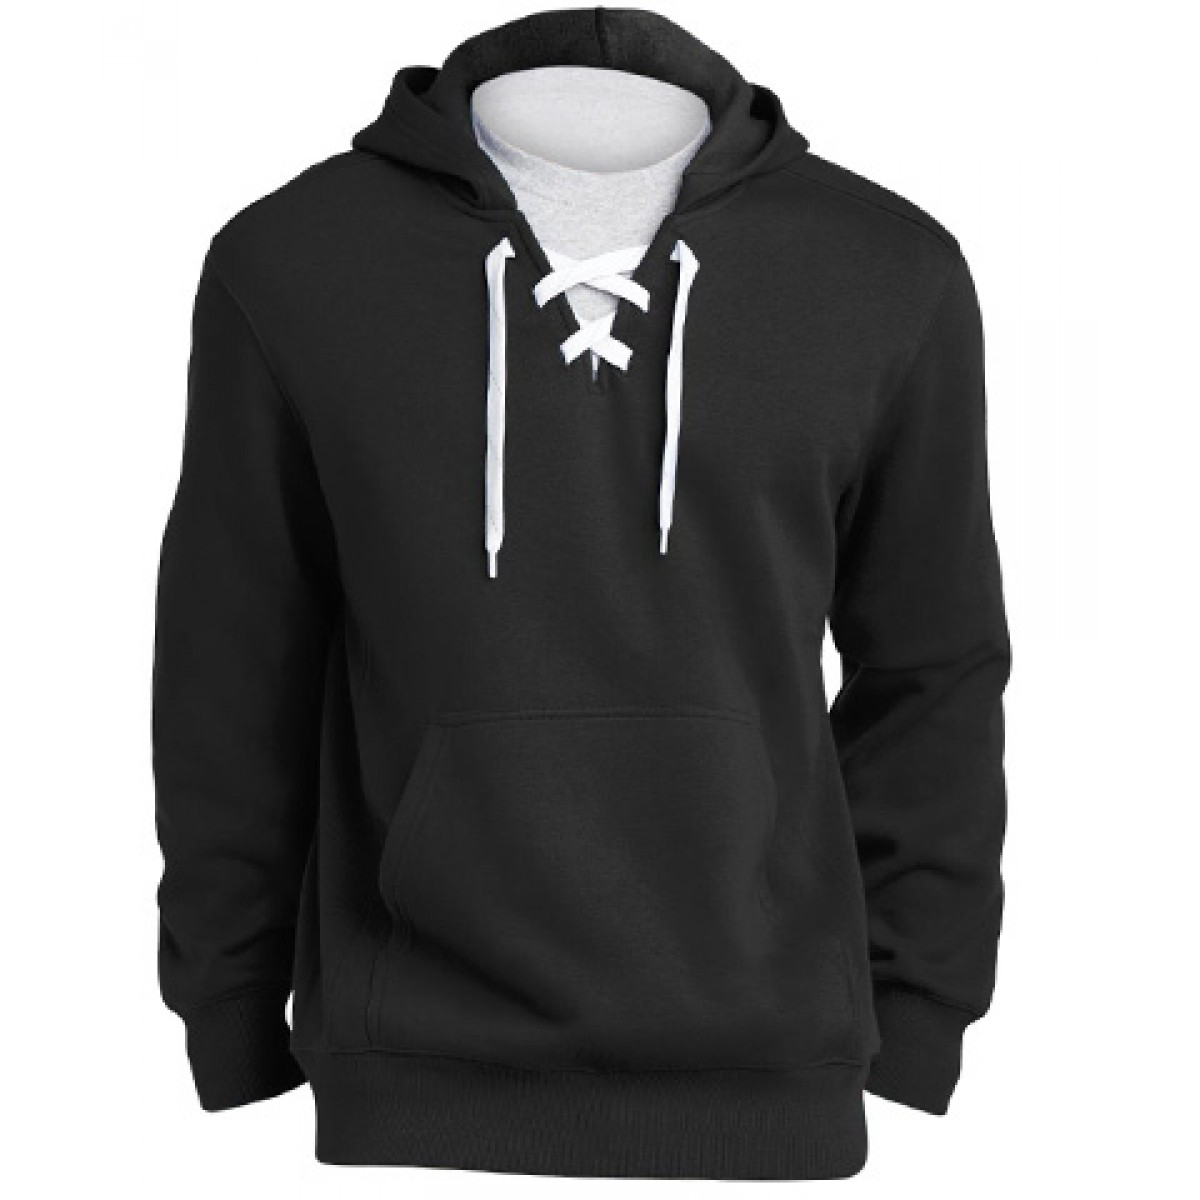 Lace Up Pullover Hooded Sweatshirt-Black-S